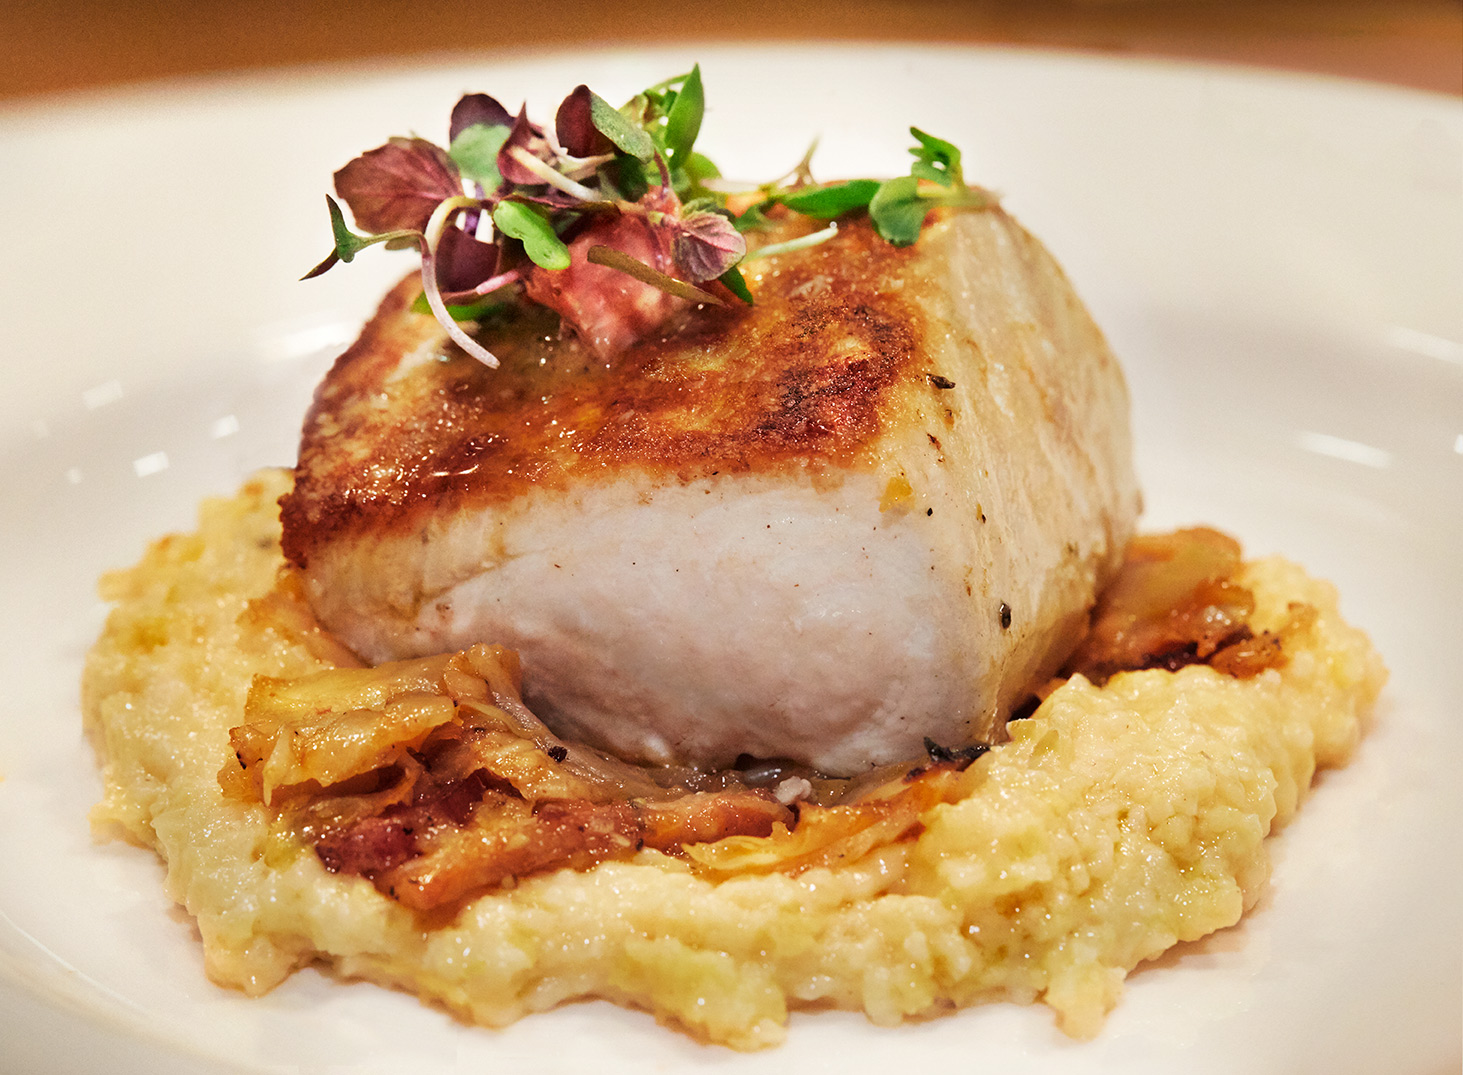 Pan Seared Hawaiian Wahoo fish with sweet potato grits, bacon braised cabbage and Tasso vinaigrette. Seafood, oysters and steak atThe Southern Steak and Oyster Restaurant in Nashville